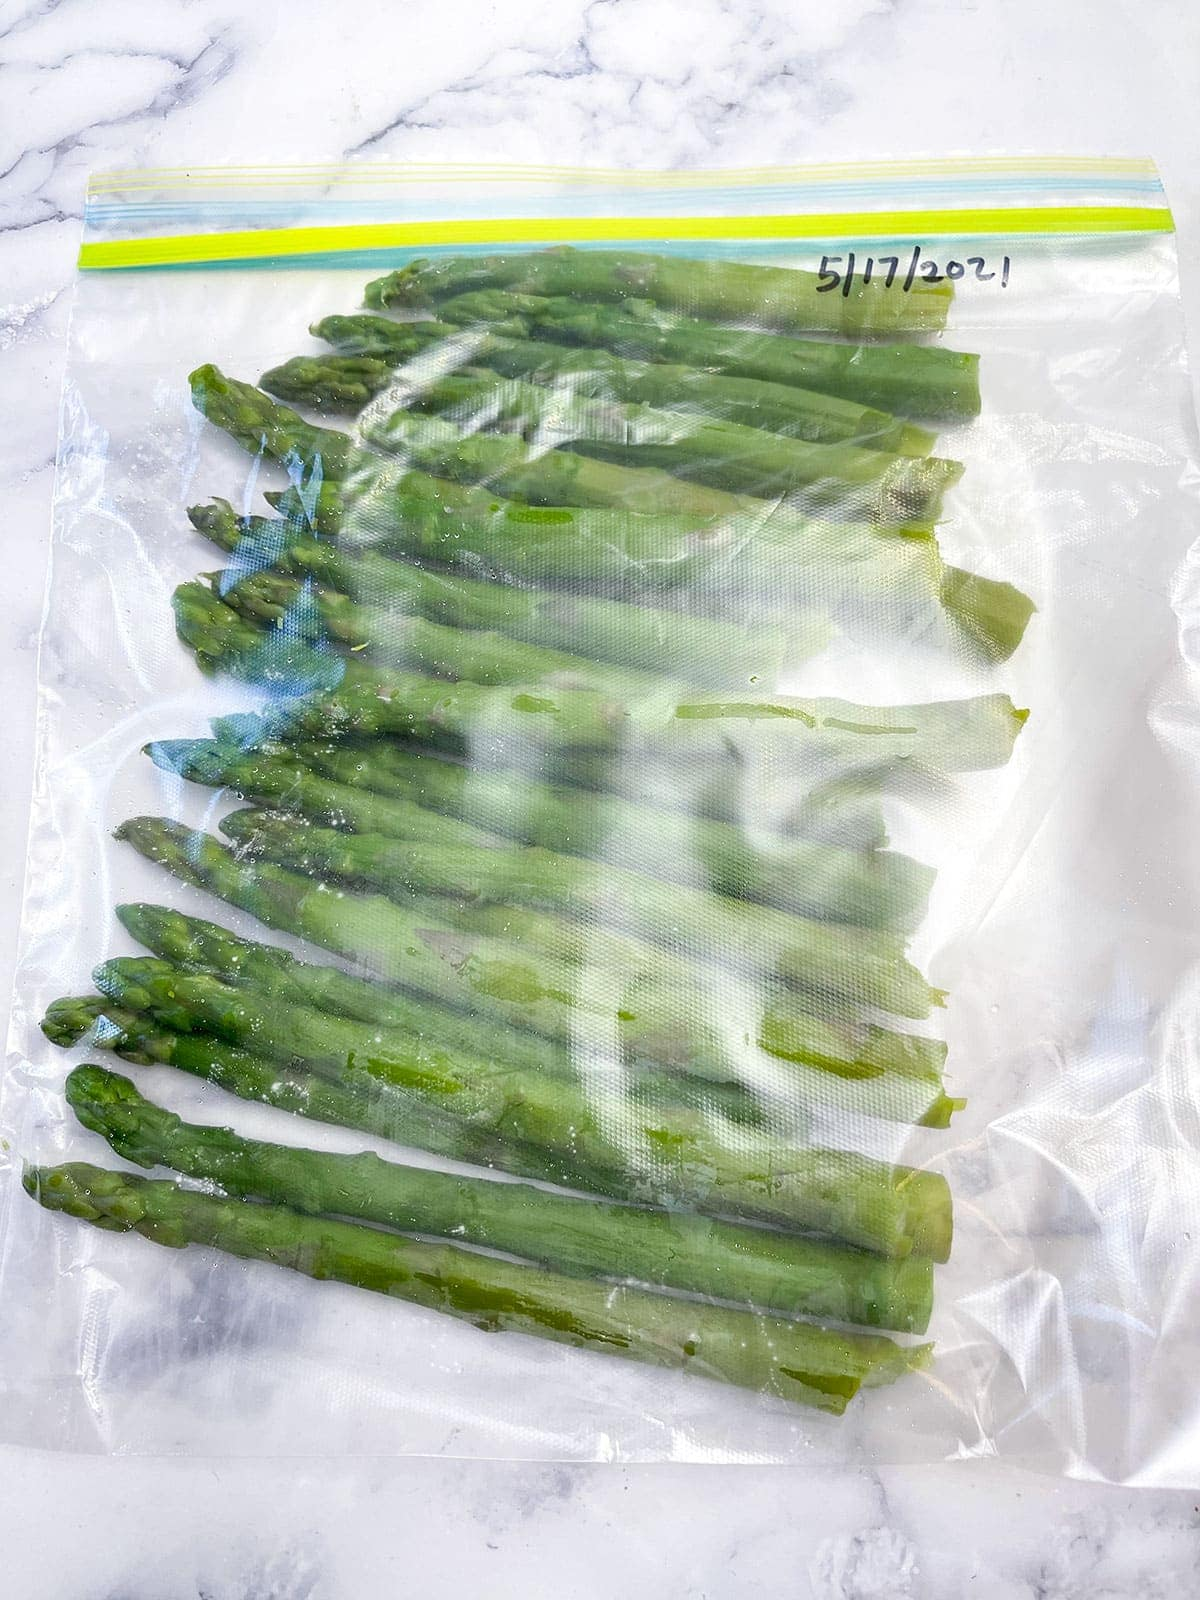 asparagus in a ziplock bag on a white marble background